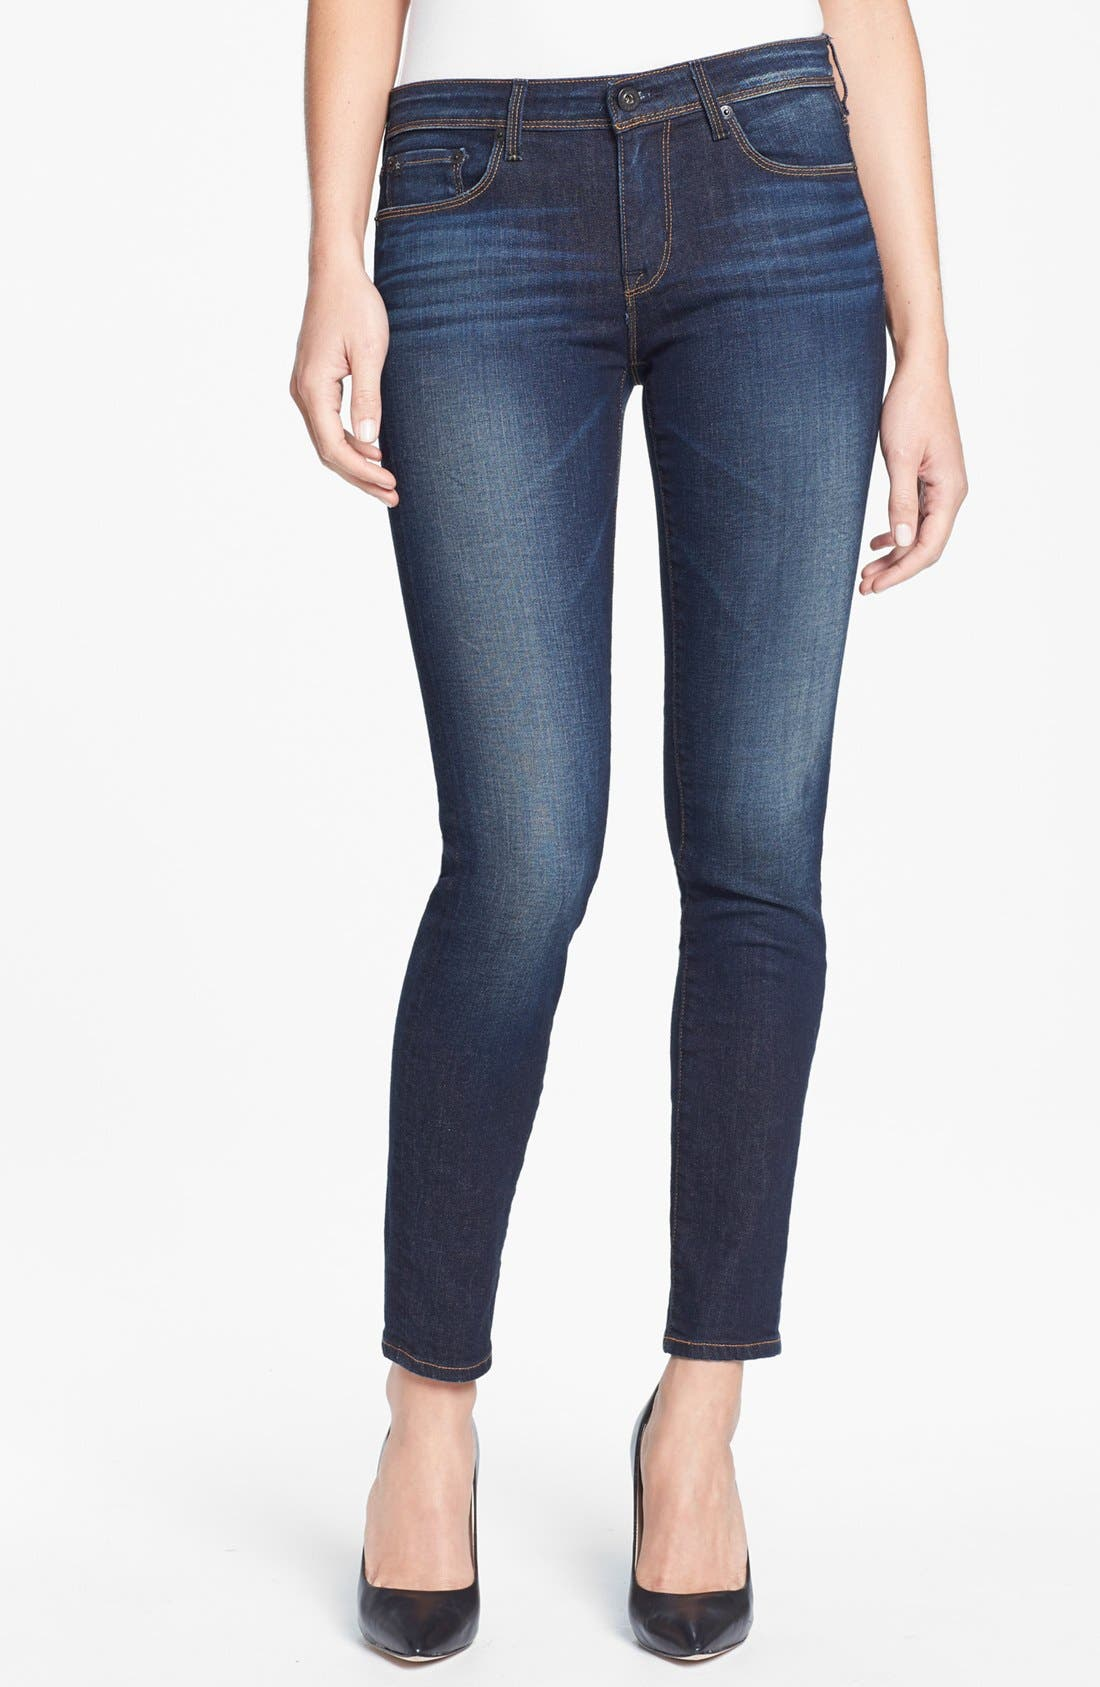 Main Image - Big Star 'Alex' Stretch Skinny Jeans (Valencia) (Petite)